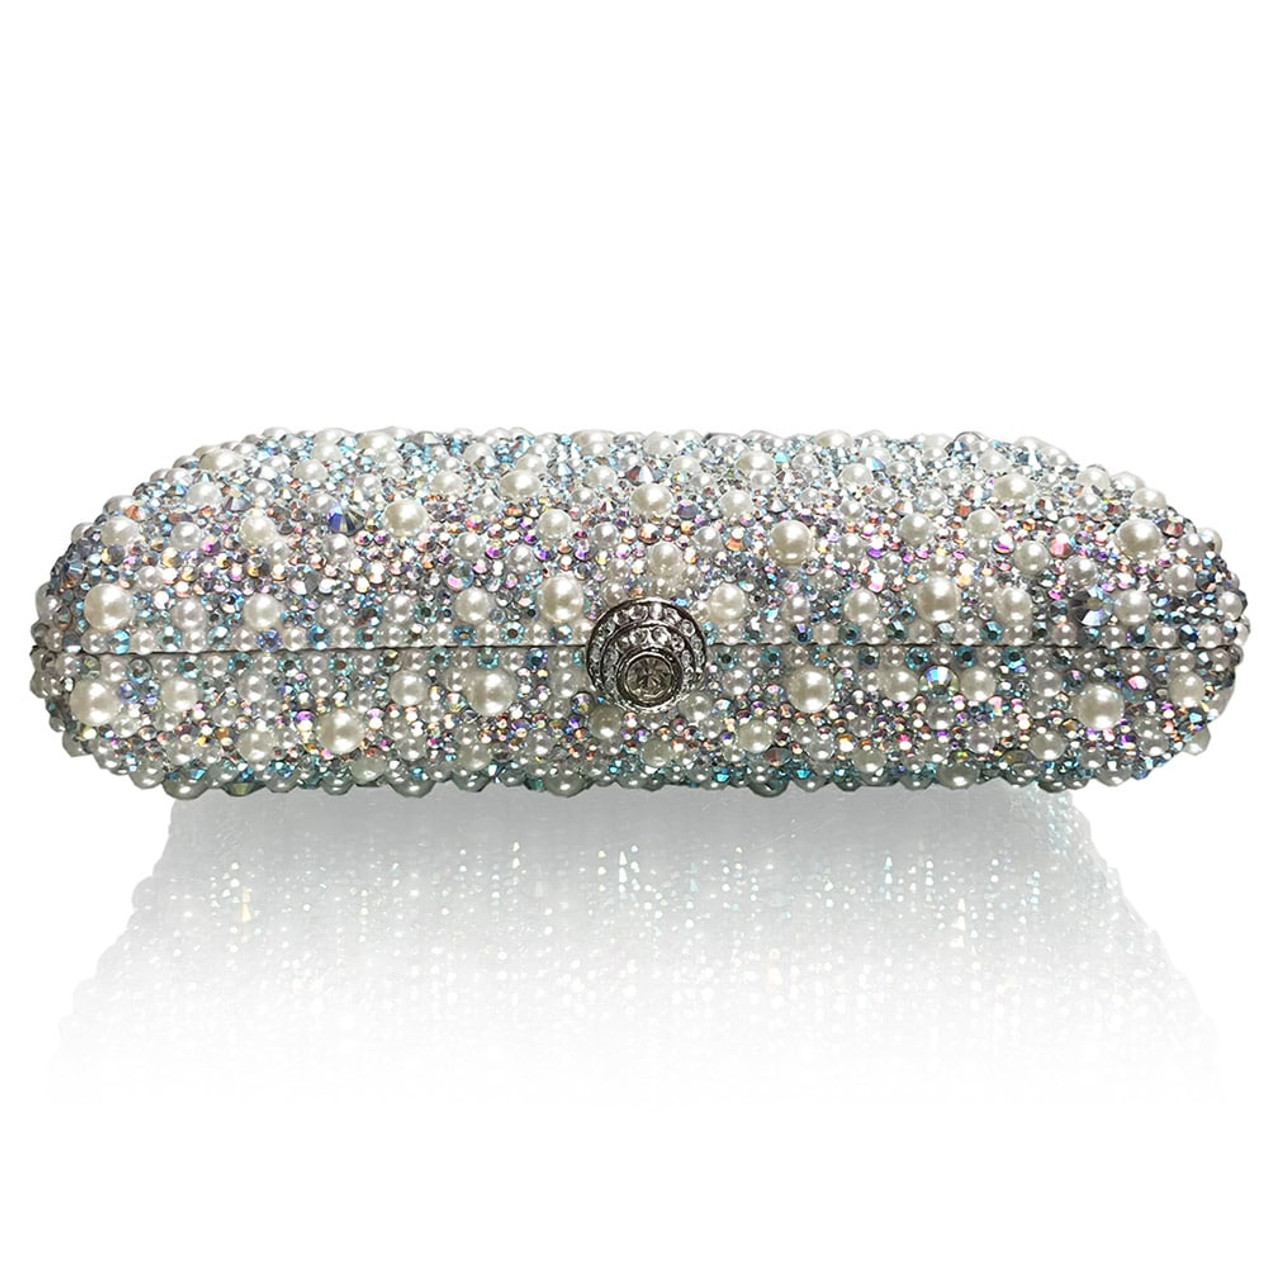 Morning Dew Large Bridal Clutch (iPhone Xs Max friendly)